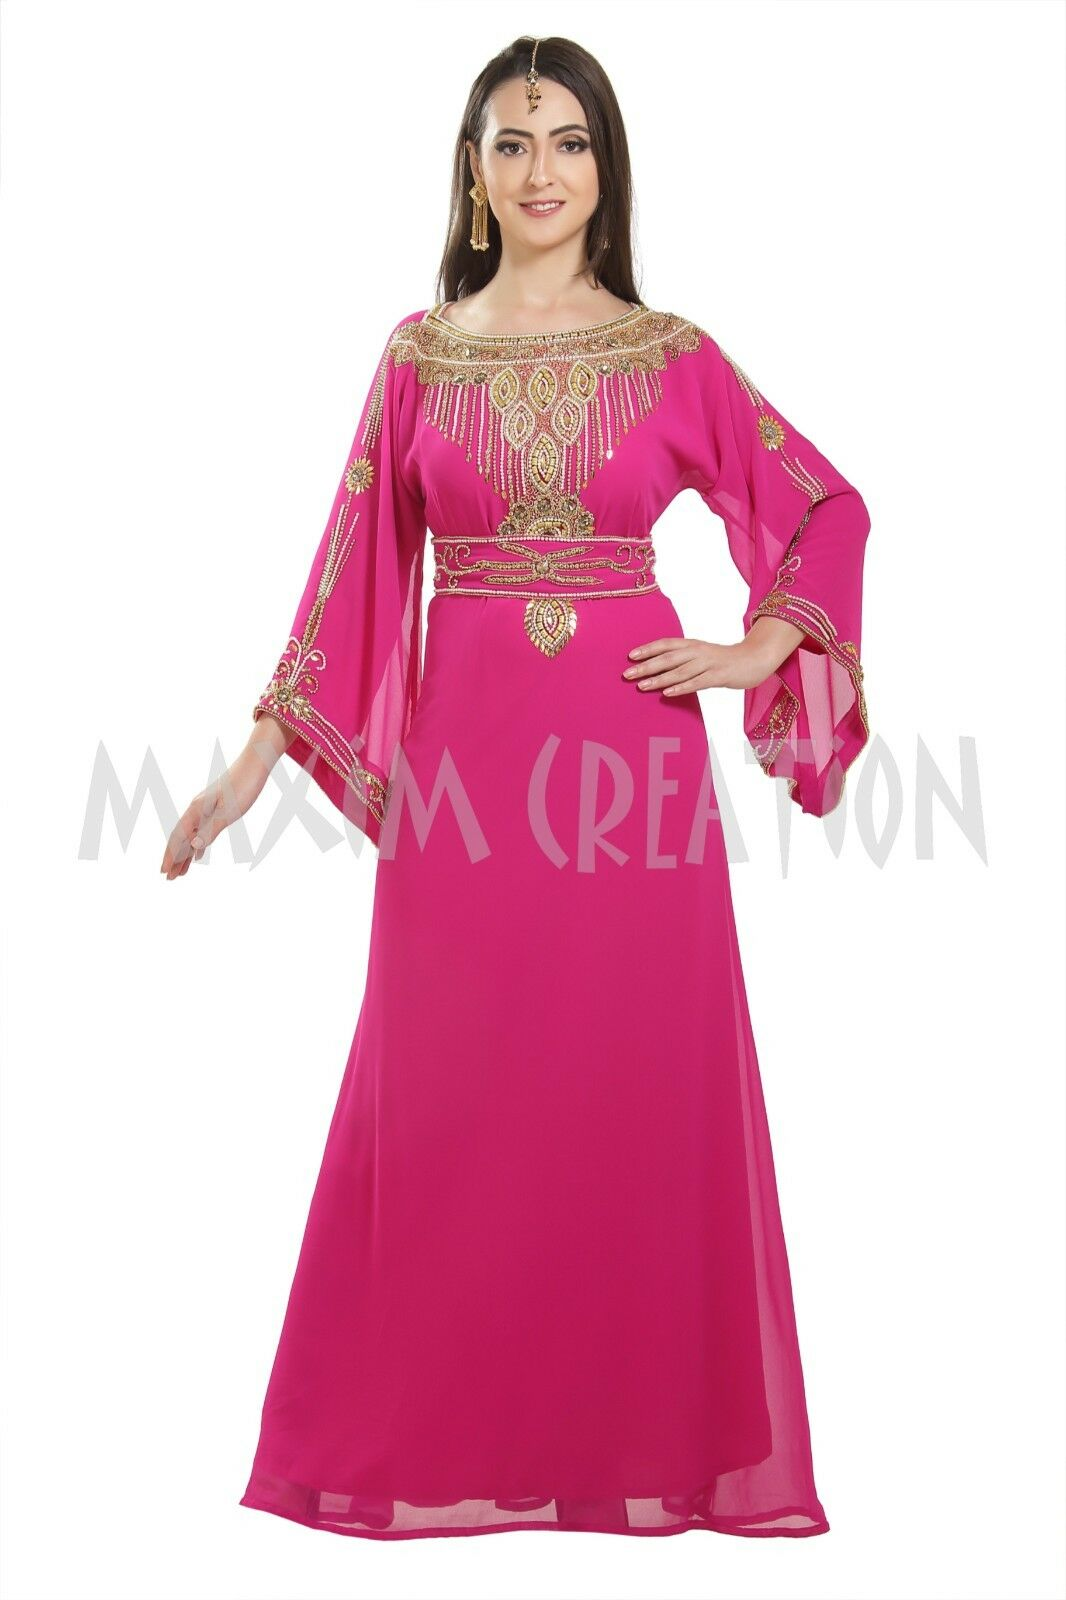 Henna Party Wear Soiree Gown Farasha Ladies Daily Use Maxi Dress Kaftan 7170